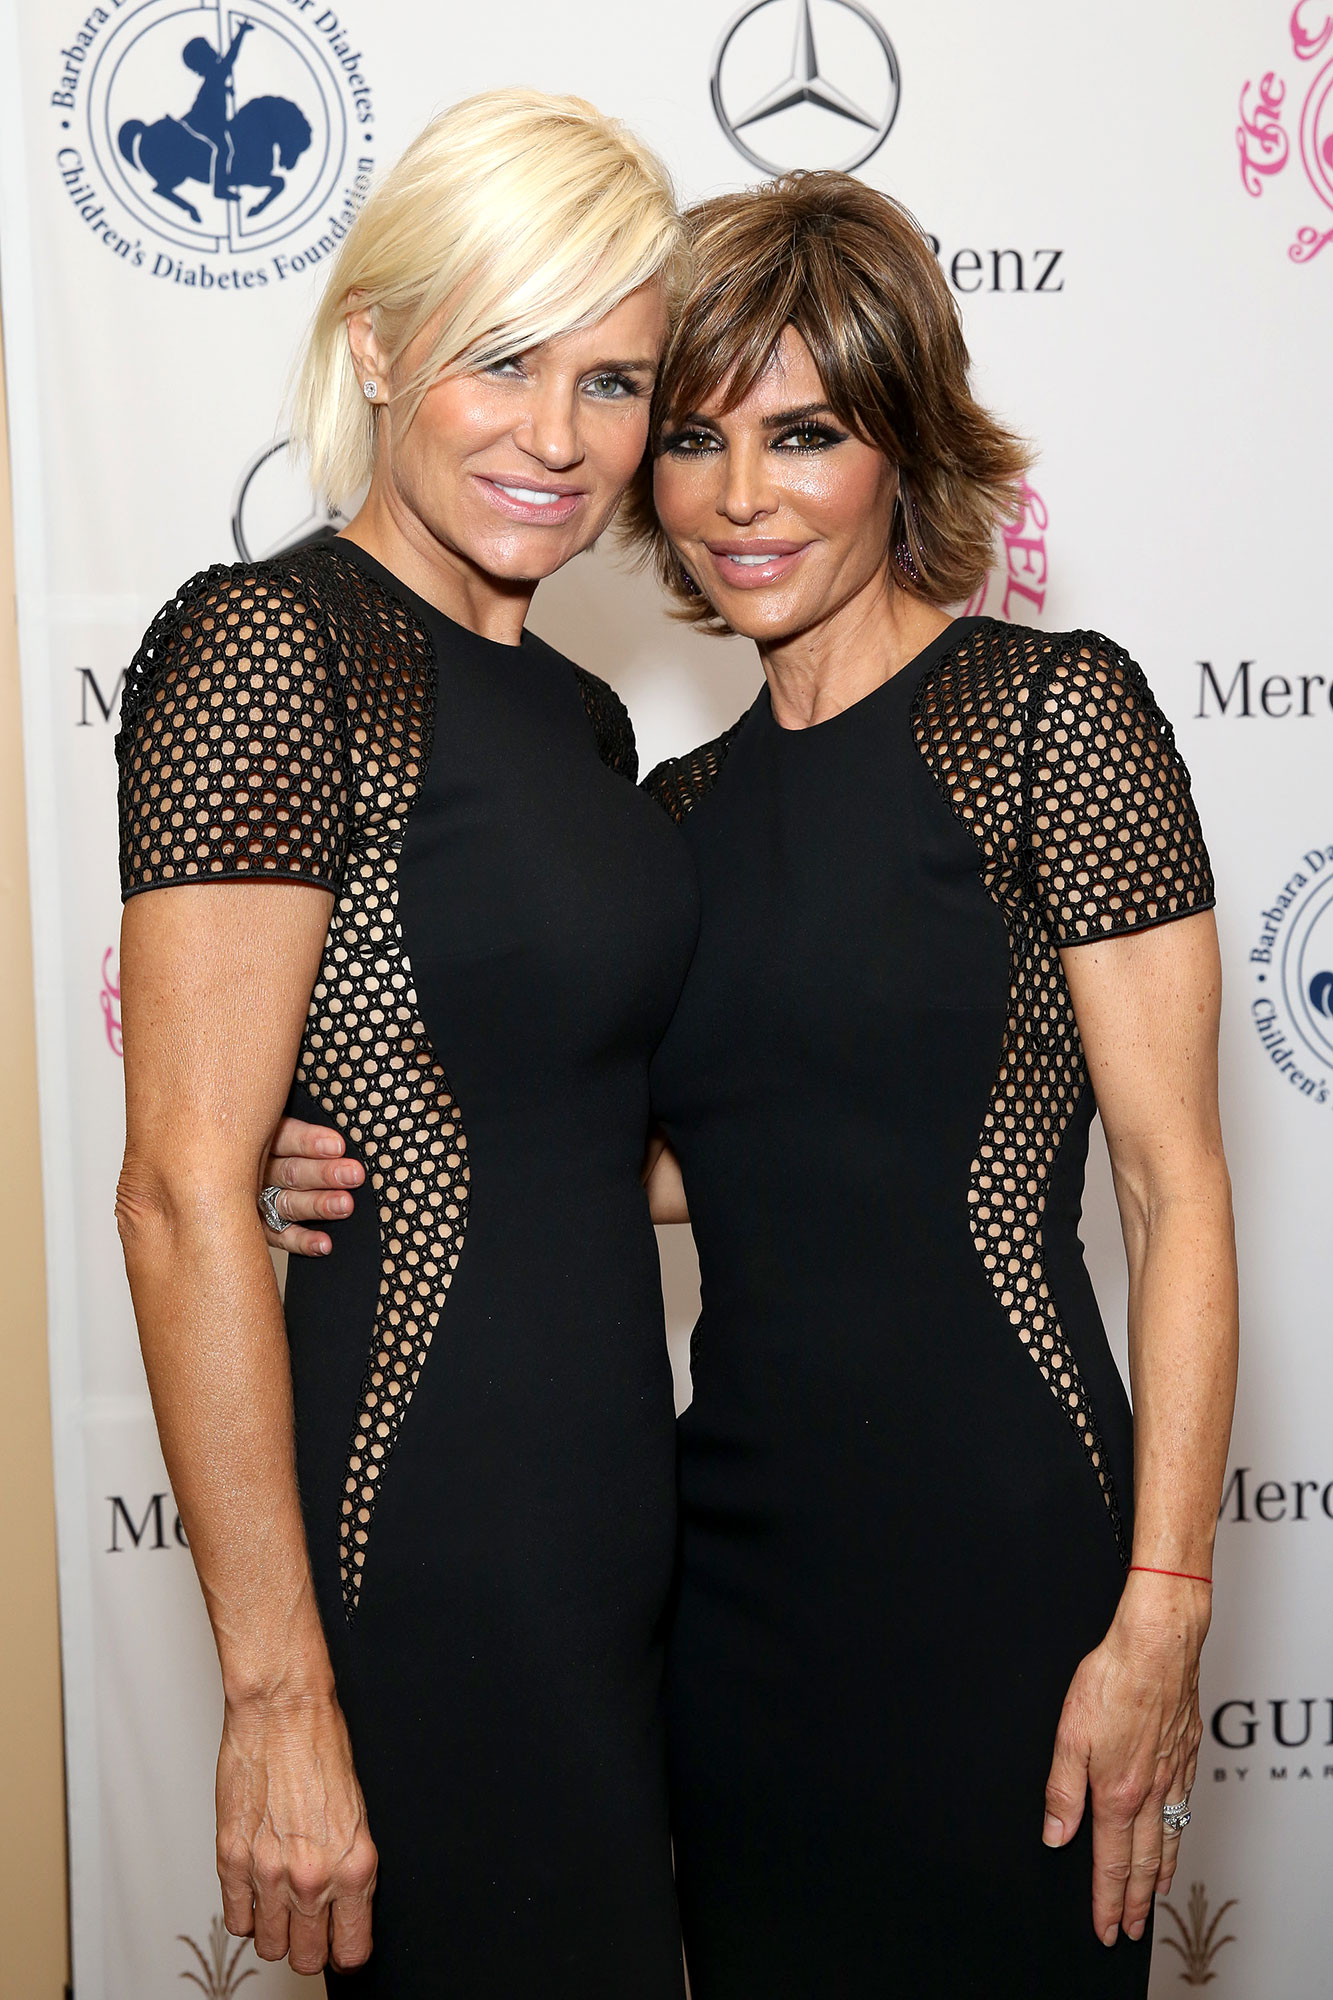 """Lisa Rinna's Most Savage Comebacks - Rinna found herself in the middle of another kerfuffle when Hadid claimed she accused Kyle and Vanderpump of questioning Bella and Anwar Hadid 's Lyme disease diagnoses. The former talk show host tweeted that she """"just pulled myself out"""" from under the bus after the February 2016 episode aired."""